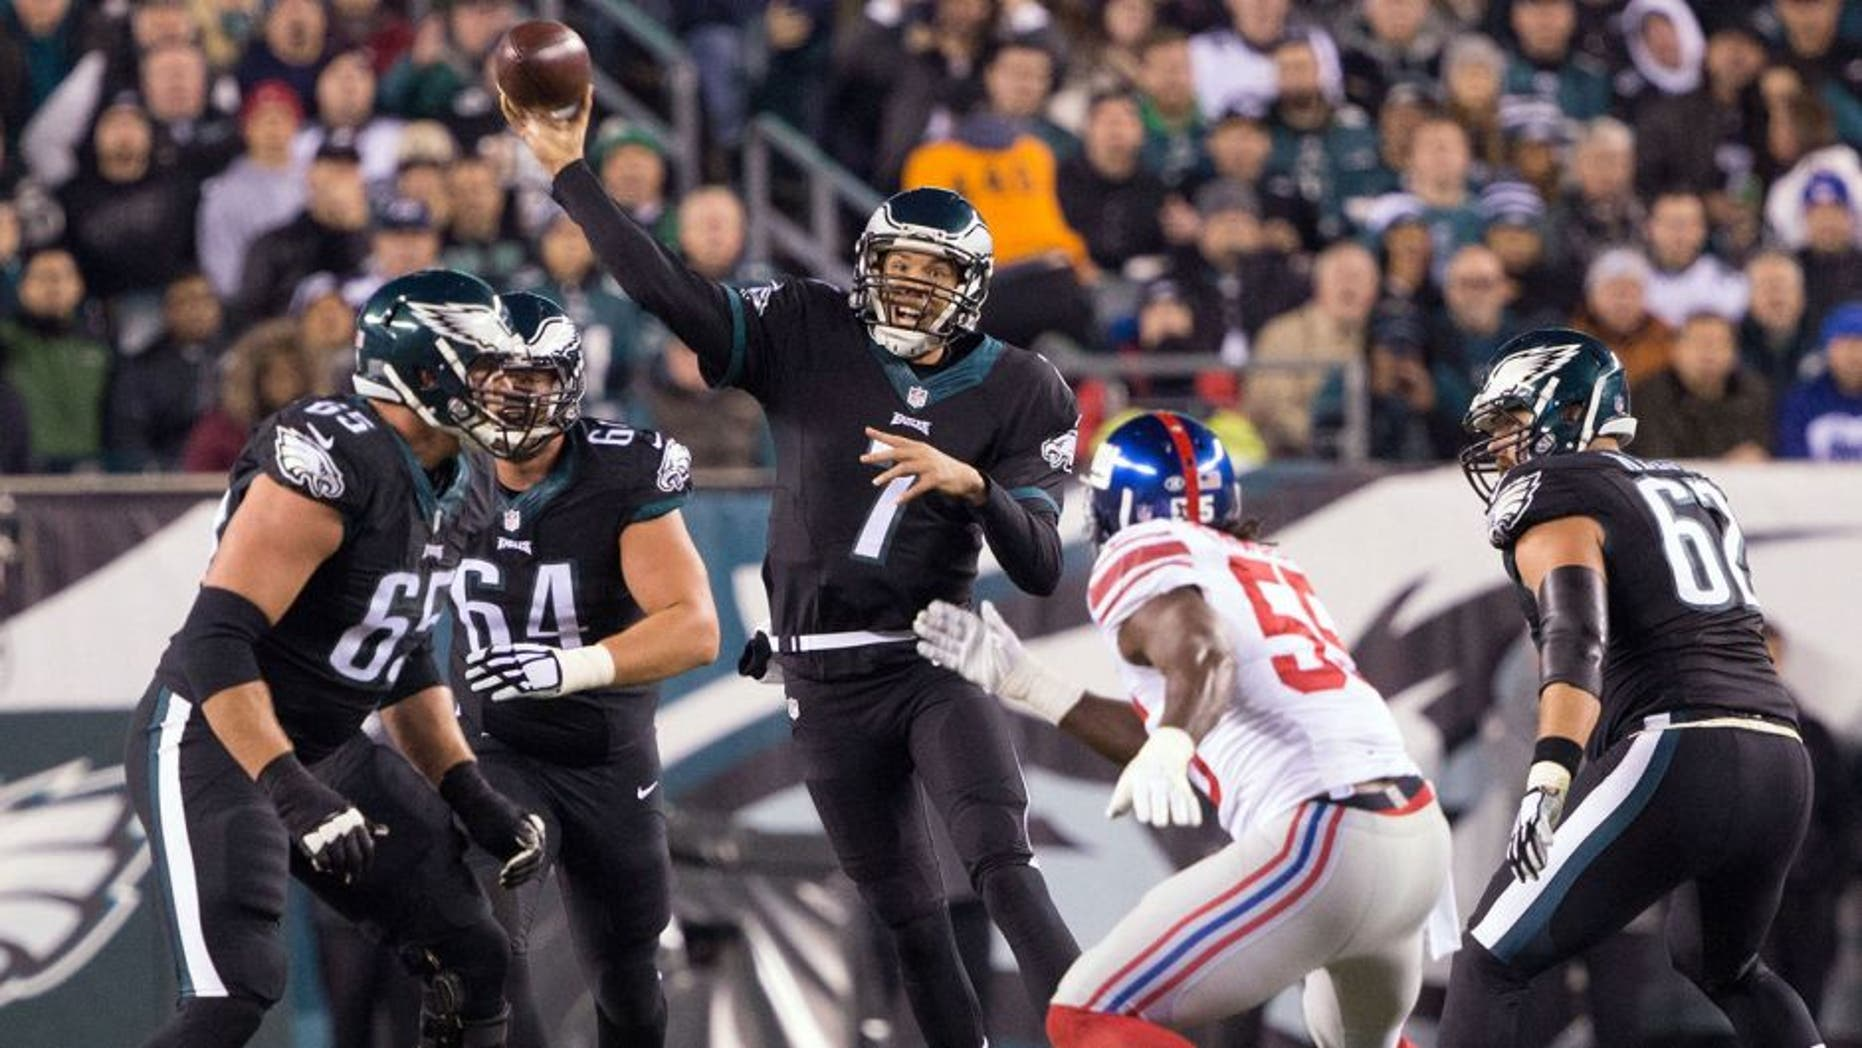 Oct 19, 2015; Philadelphia, PA, USA; Philadelphia Eagles quarterback Sam Bradford (7) passes against the New York Giants during the second quarter at Lincoln Financial Field. Mandatory Credit: Bill Streicher-USA TODAY Sports